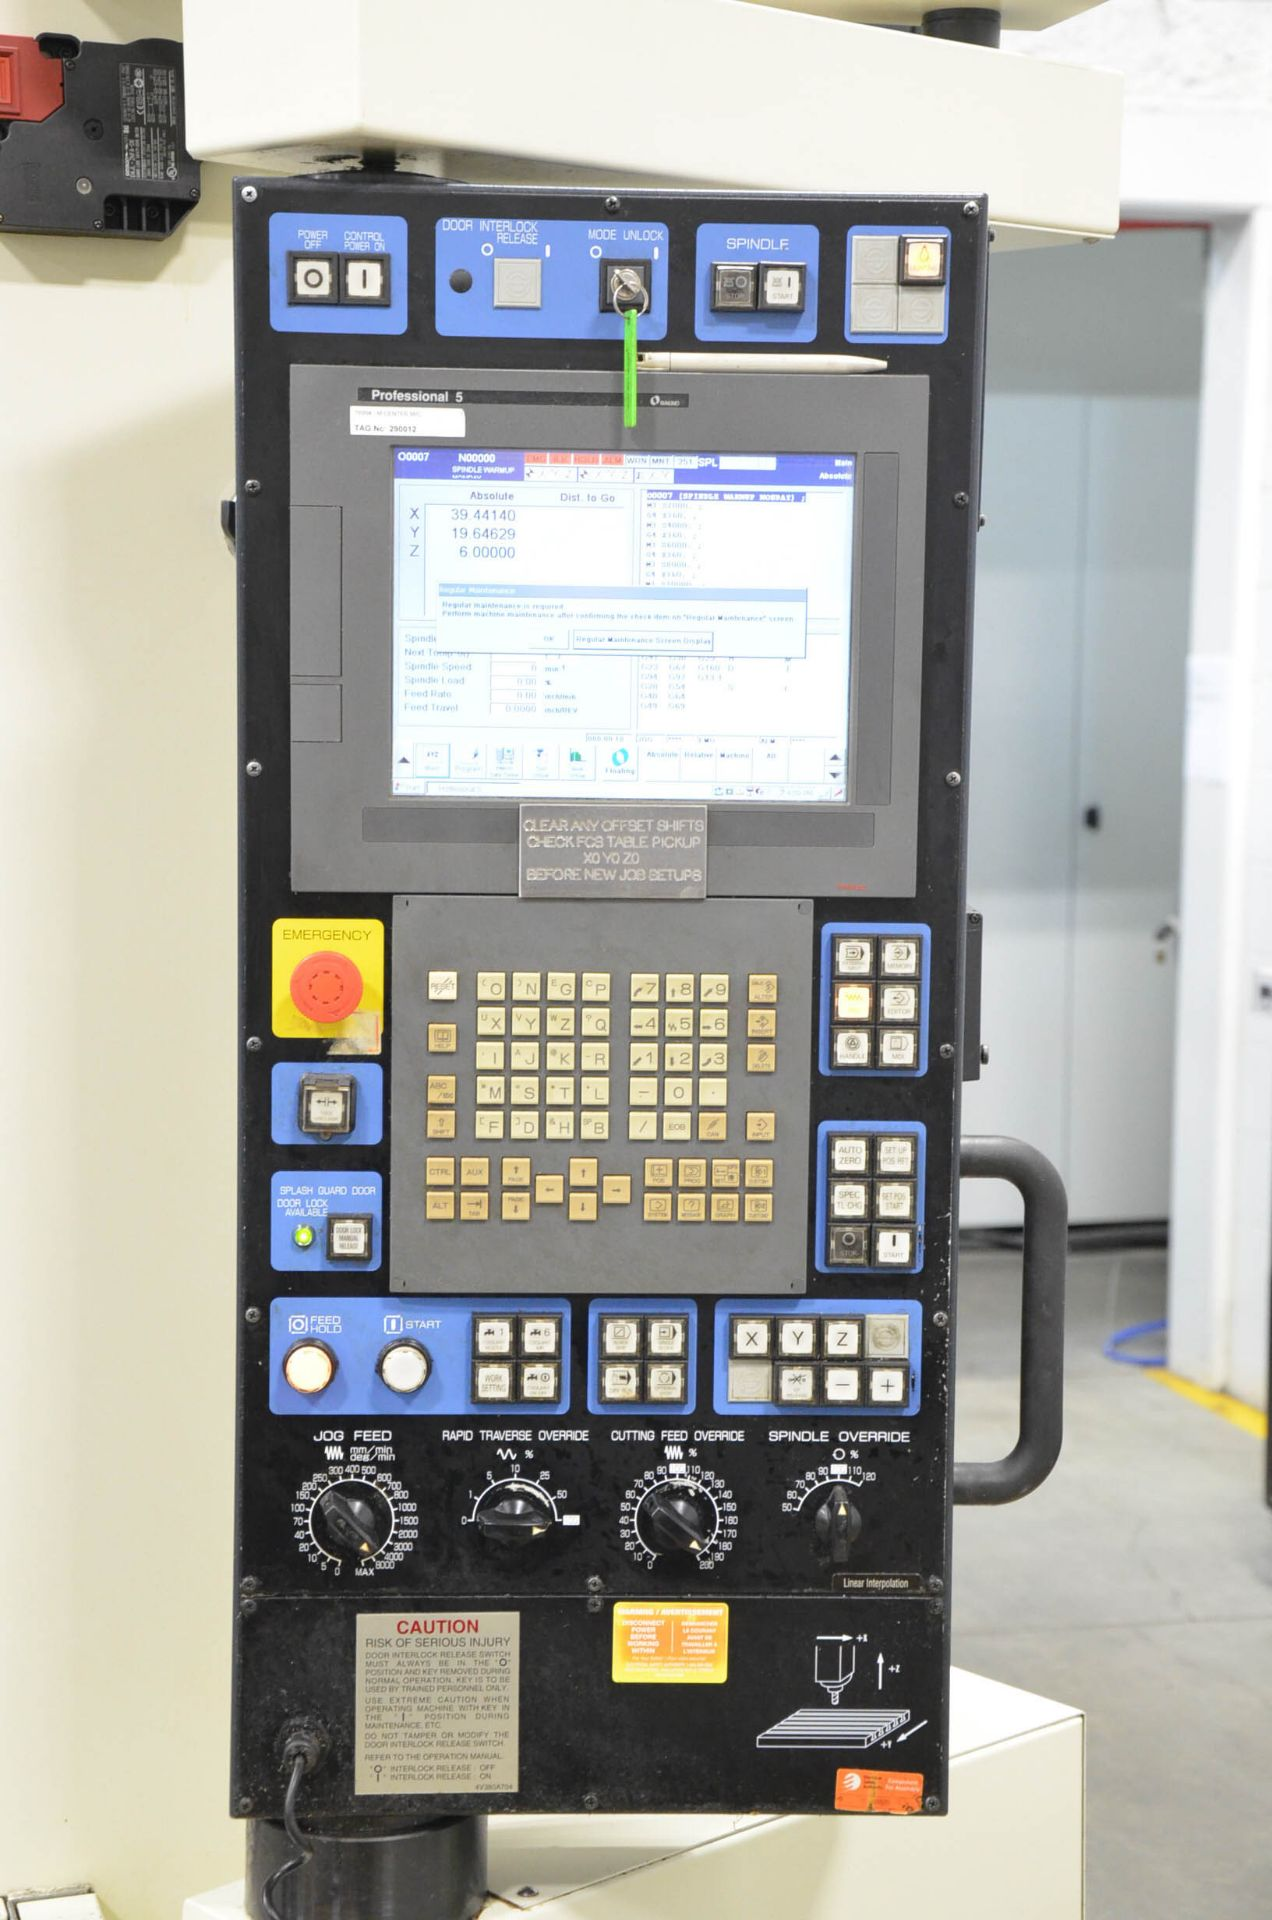 MAKINO (2008) V99L(#50) CNC VERTICAL MACHINING CENTER WITH MAKINO PROFESSIONAL 5 CNC CONTROL, 39. - Image 11 of 12